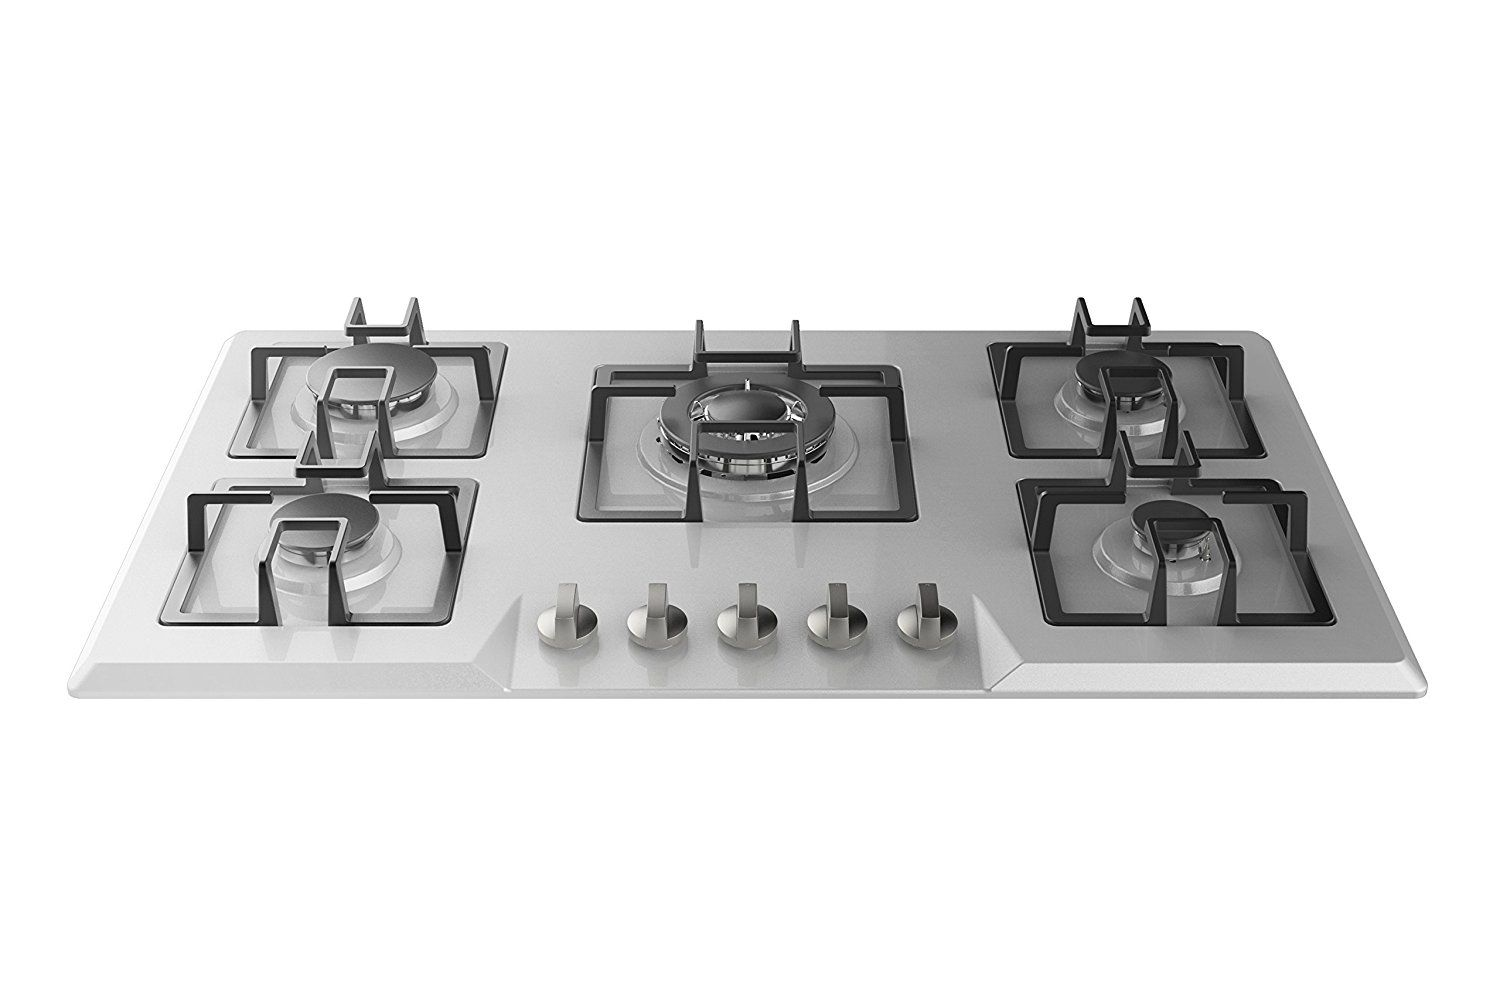 Empava 34 Stainless Steel Built In 5 Burners Stove Gas Hob Fixed Cooktop For More Information Visit Image Link Cooktop Burner Stove Cool Kitchens